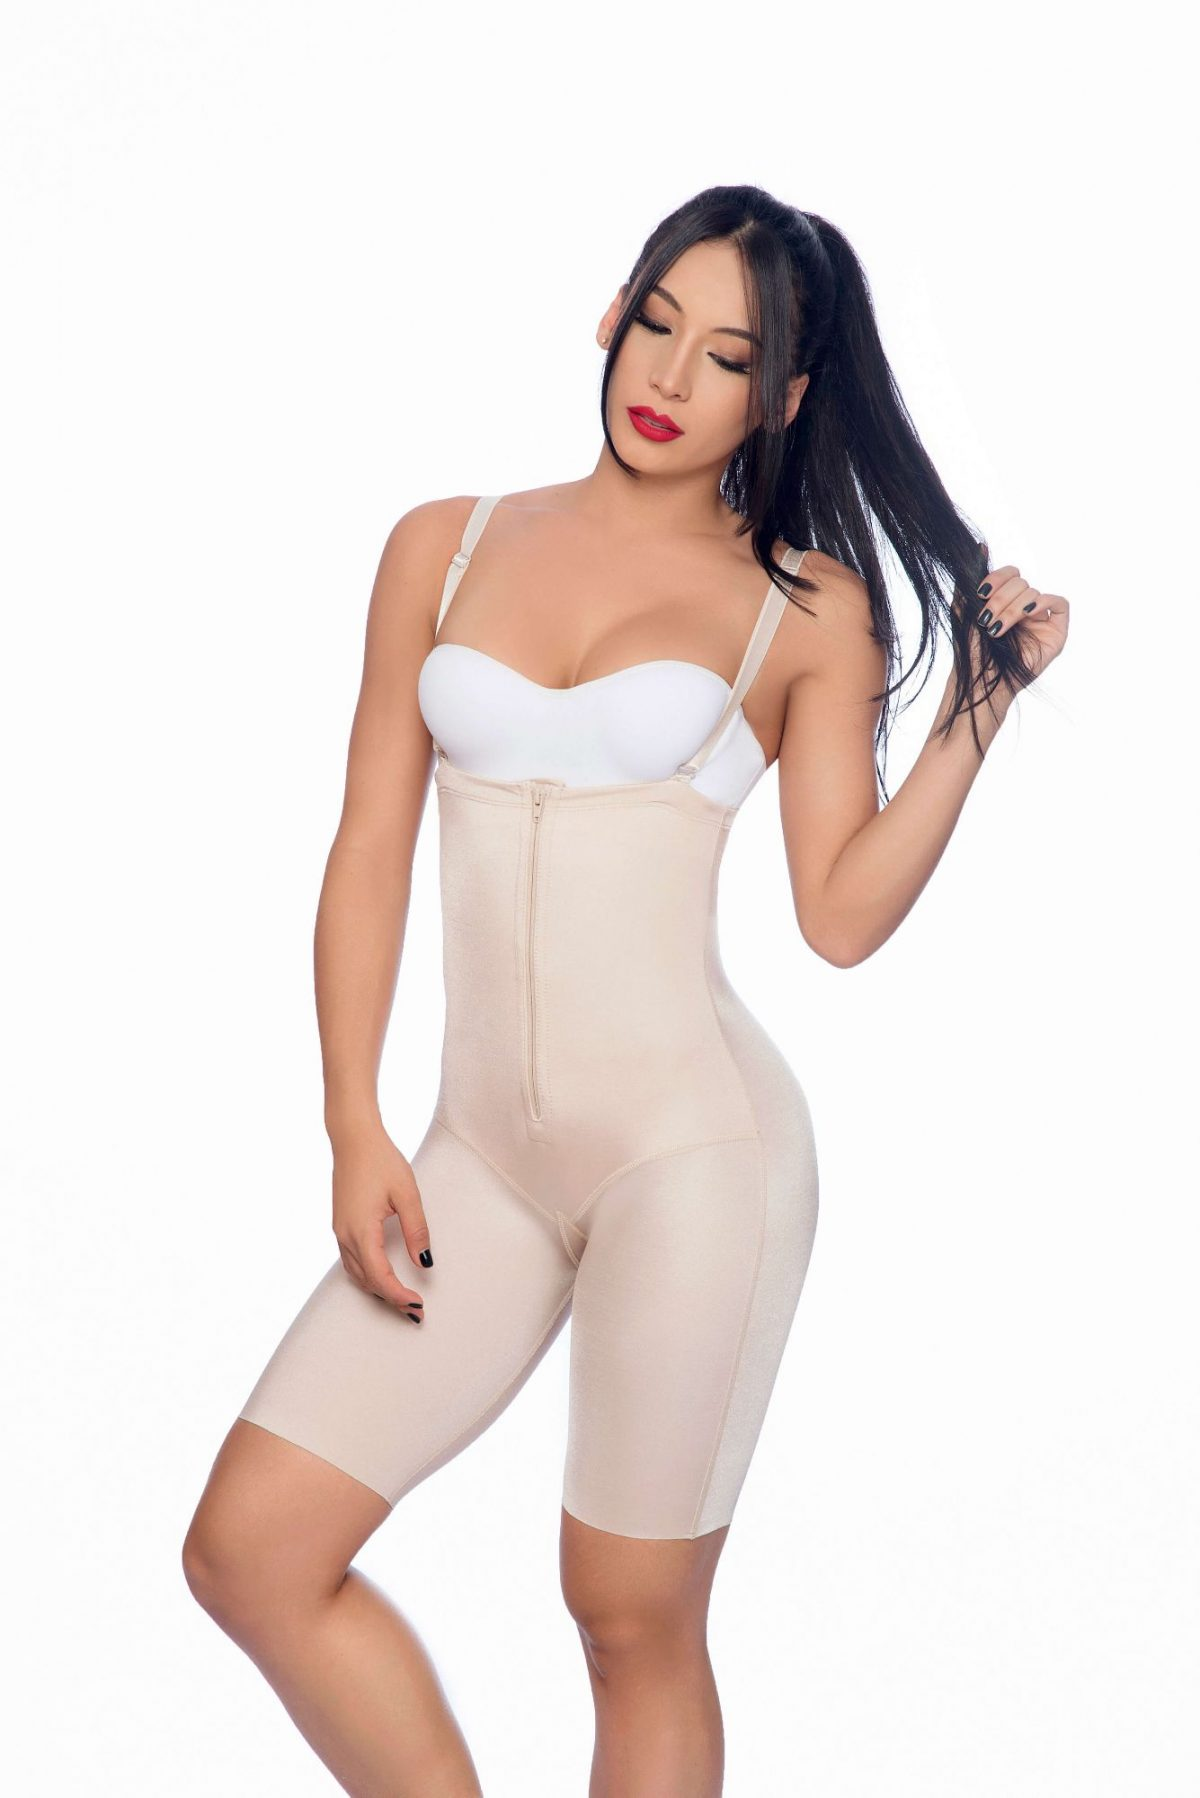 Long body shaper with suspender straps